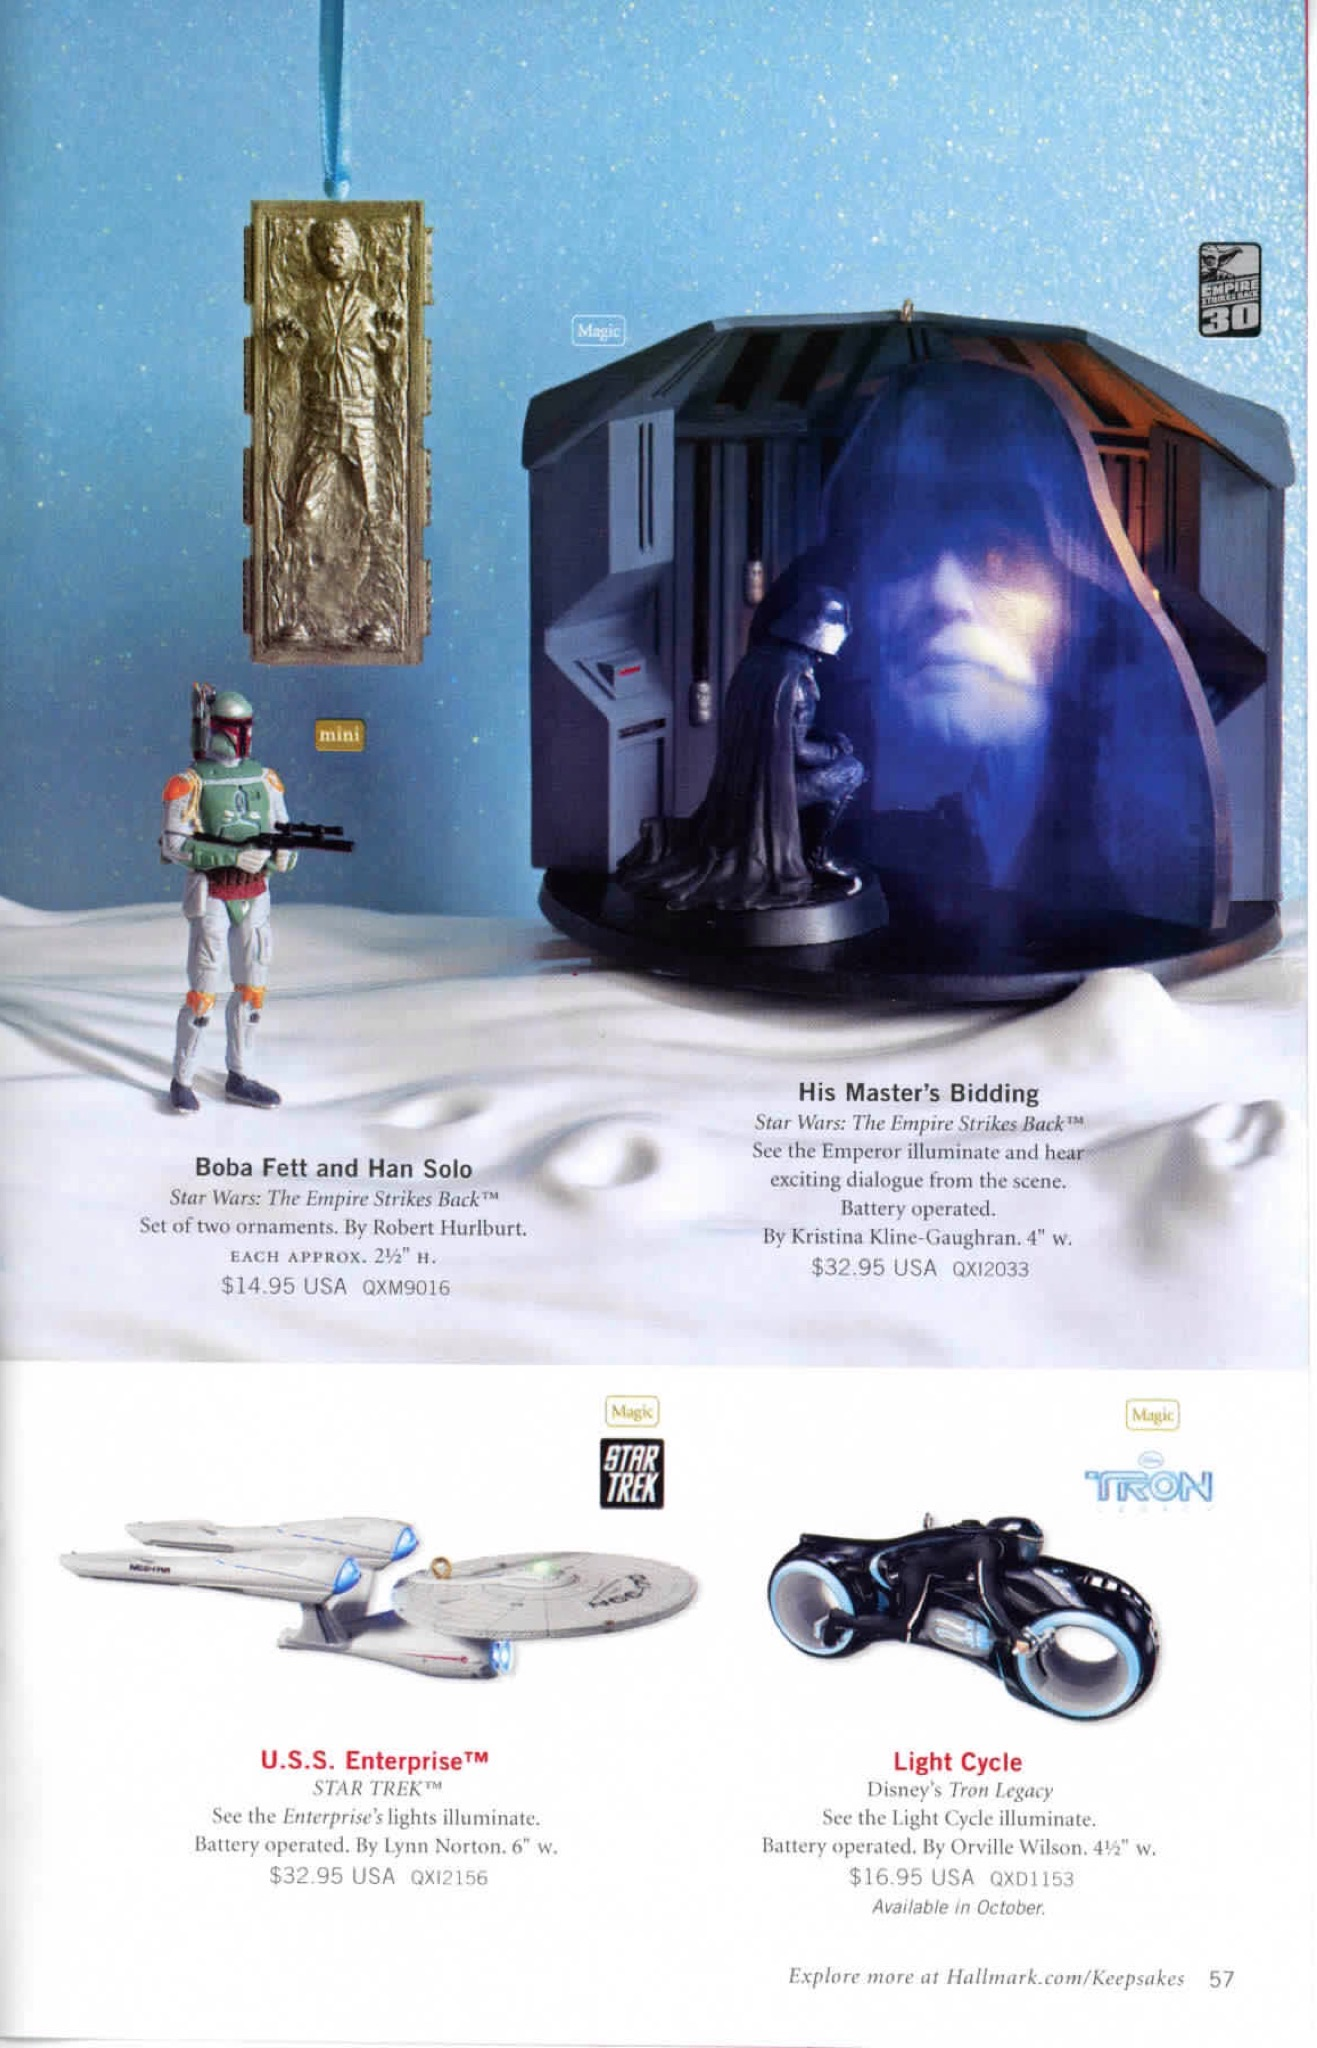 This entry was posted in 2010 dream books print ads hallmark advertisements ornaments by year on july 11 2011 by skidoopostcards